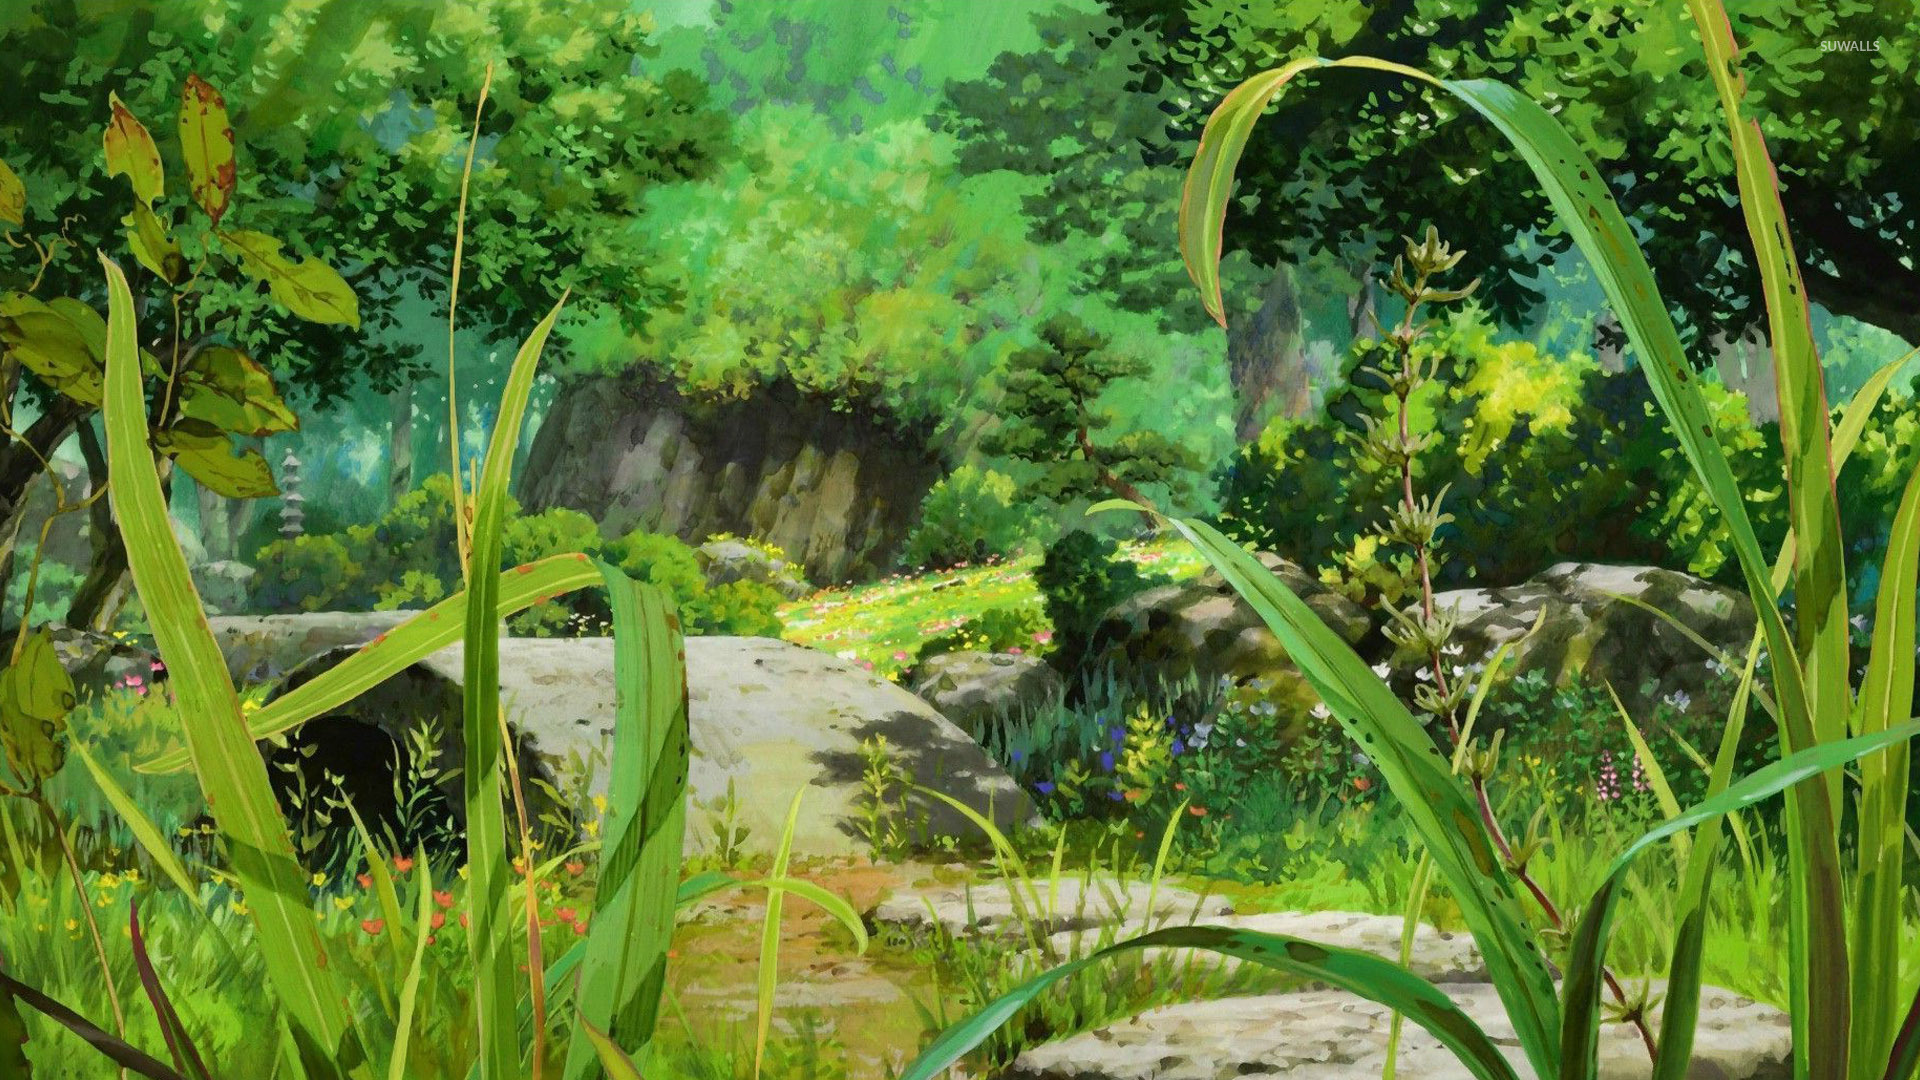 Anime forest wallpaper anime wallpapers 28742 anime forest wallpaper voltagebd Gallery